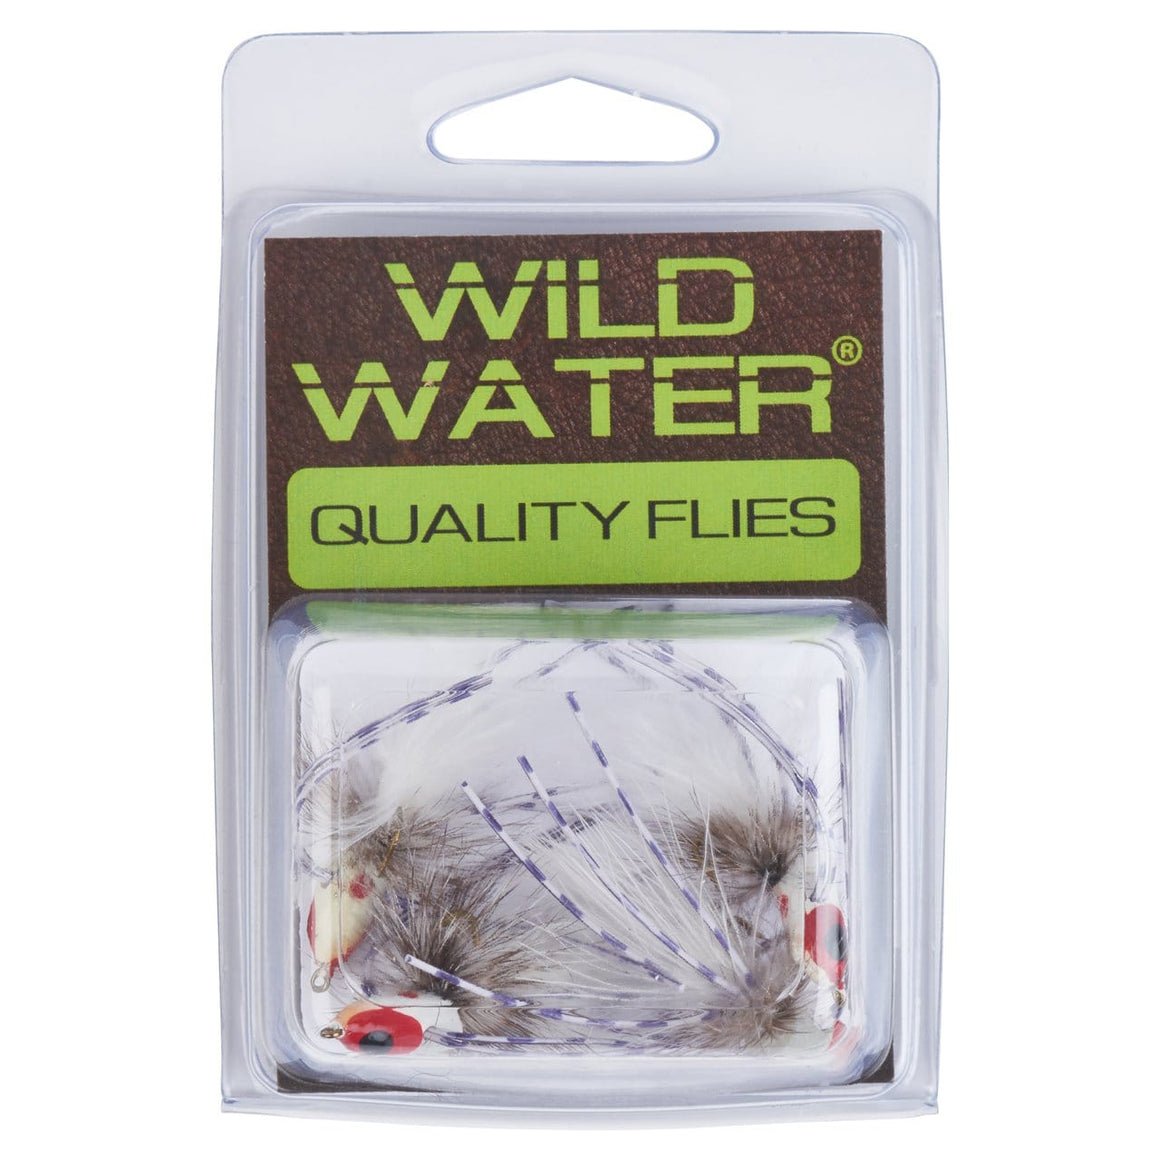 Wild Water White Glowing Spider Leg Slider Popper by Pultz Poppers, Size 8, Qty. 4 - Wild Water Fly Fishing